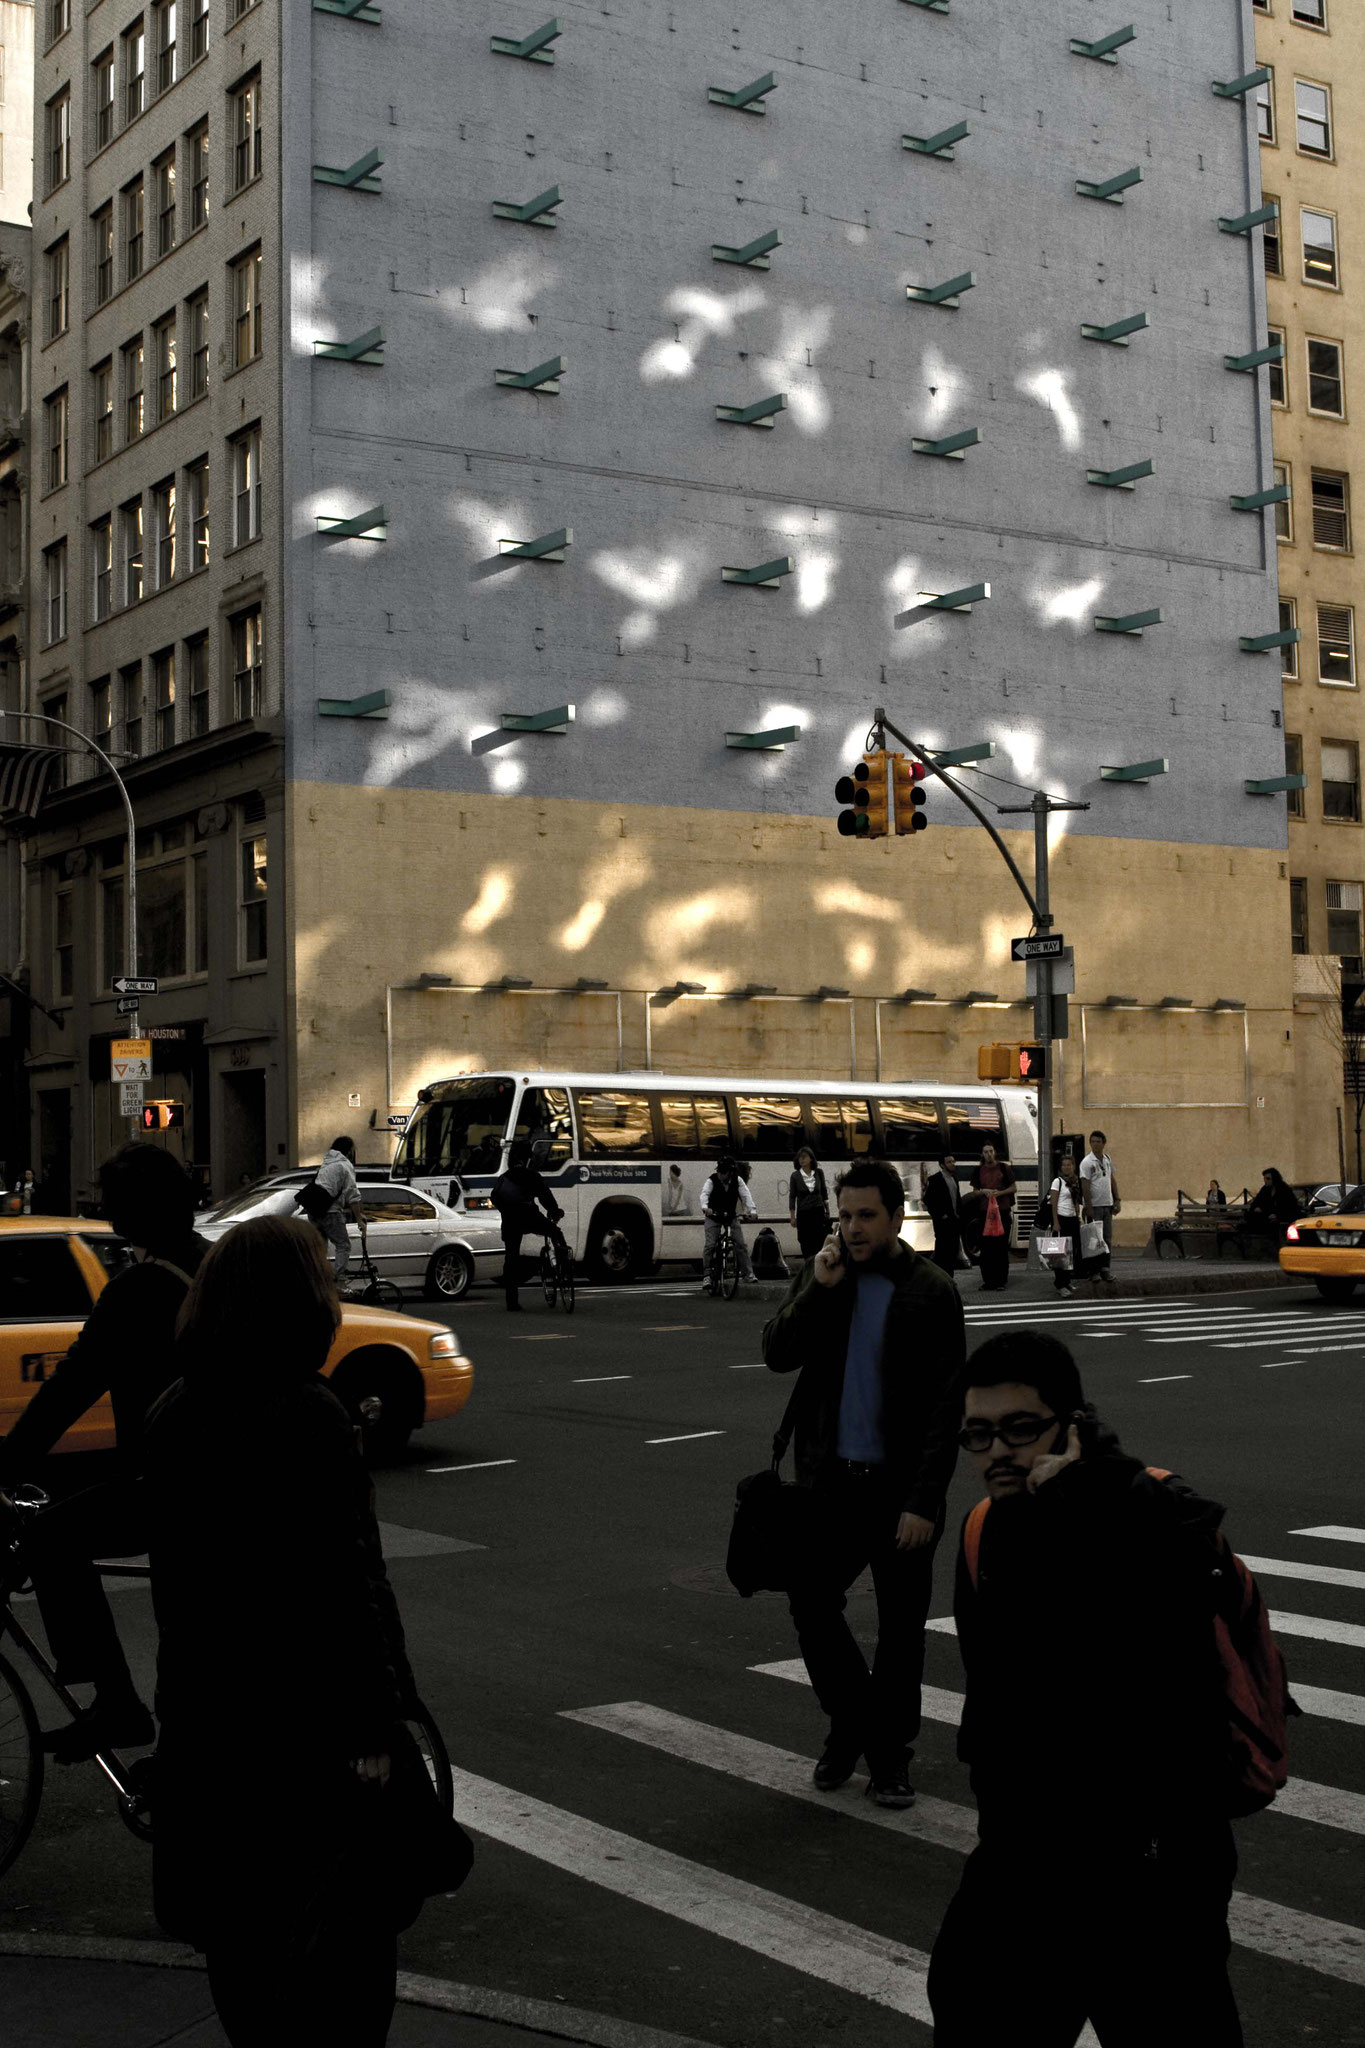 NYC |All rights reserved|